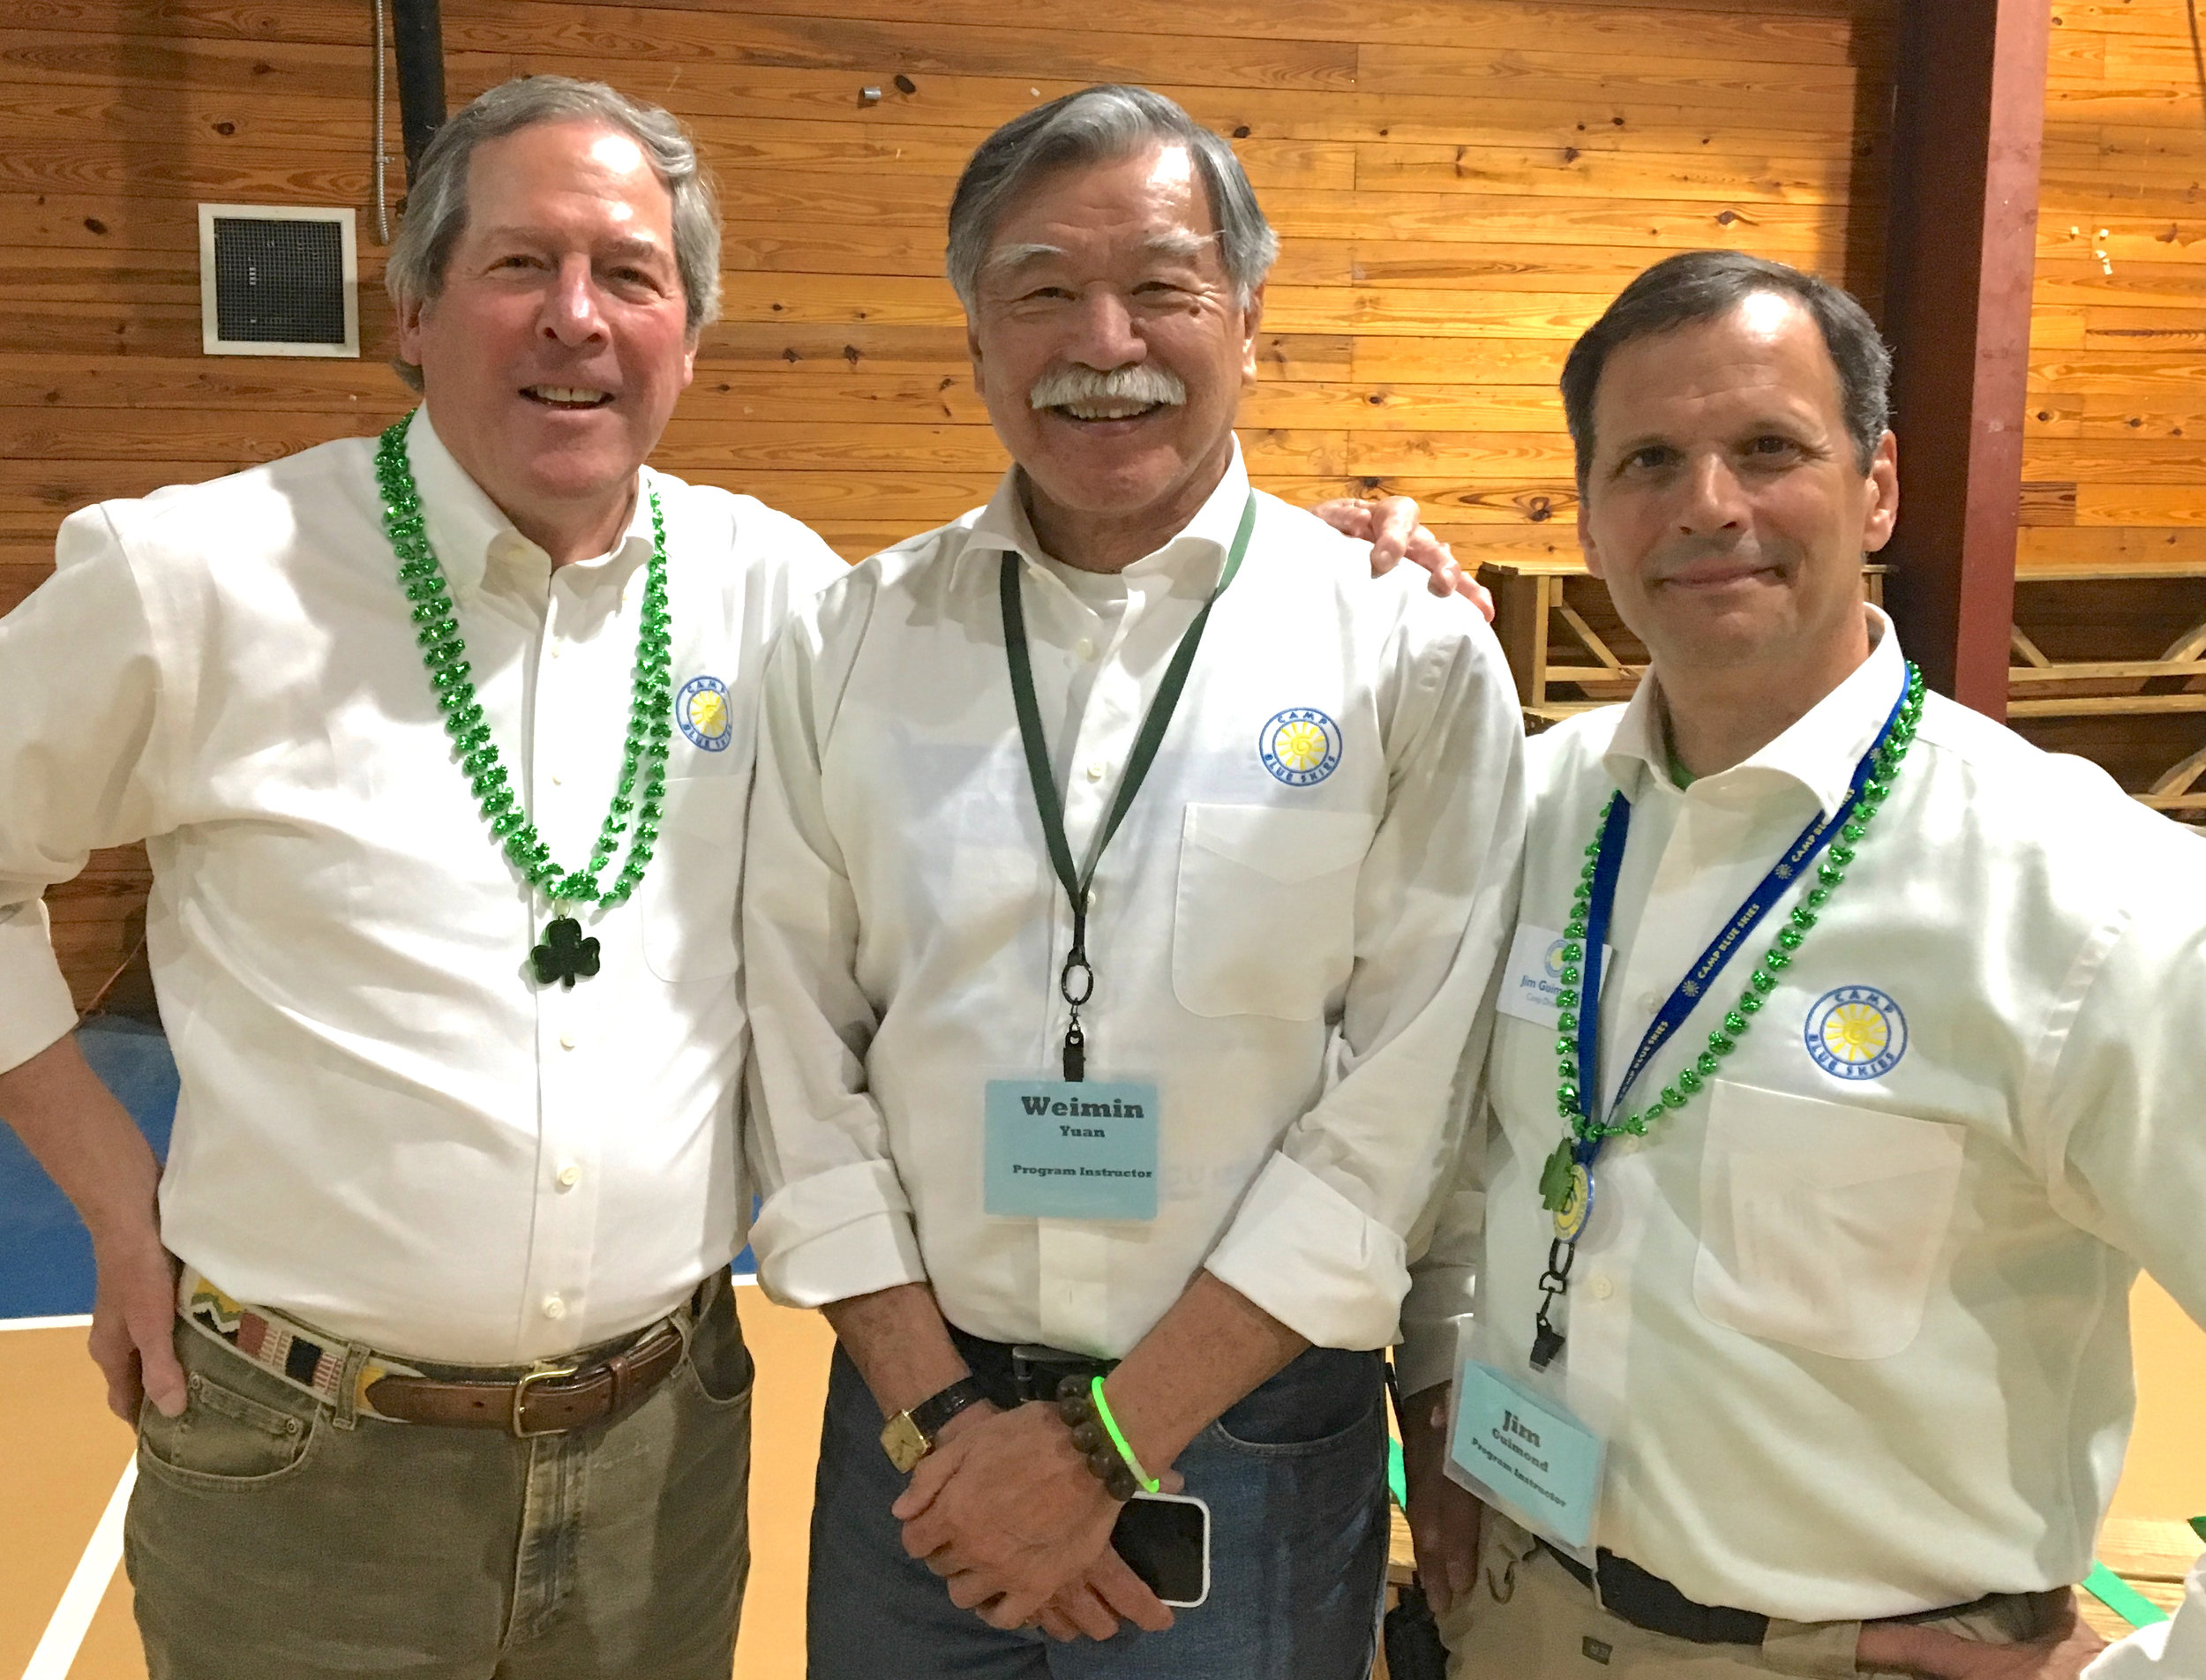 Looking dapper in the Forrest Lennard shirts are (from left) Camp Blue Skies Founder Dick Sesler, volunteer Weiman Yuan and Camp Director Jim Guimond.